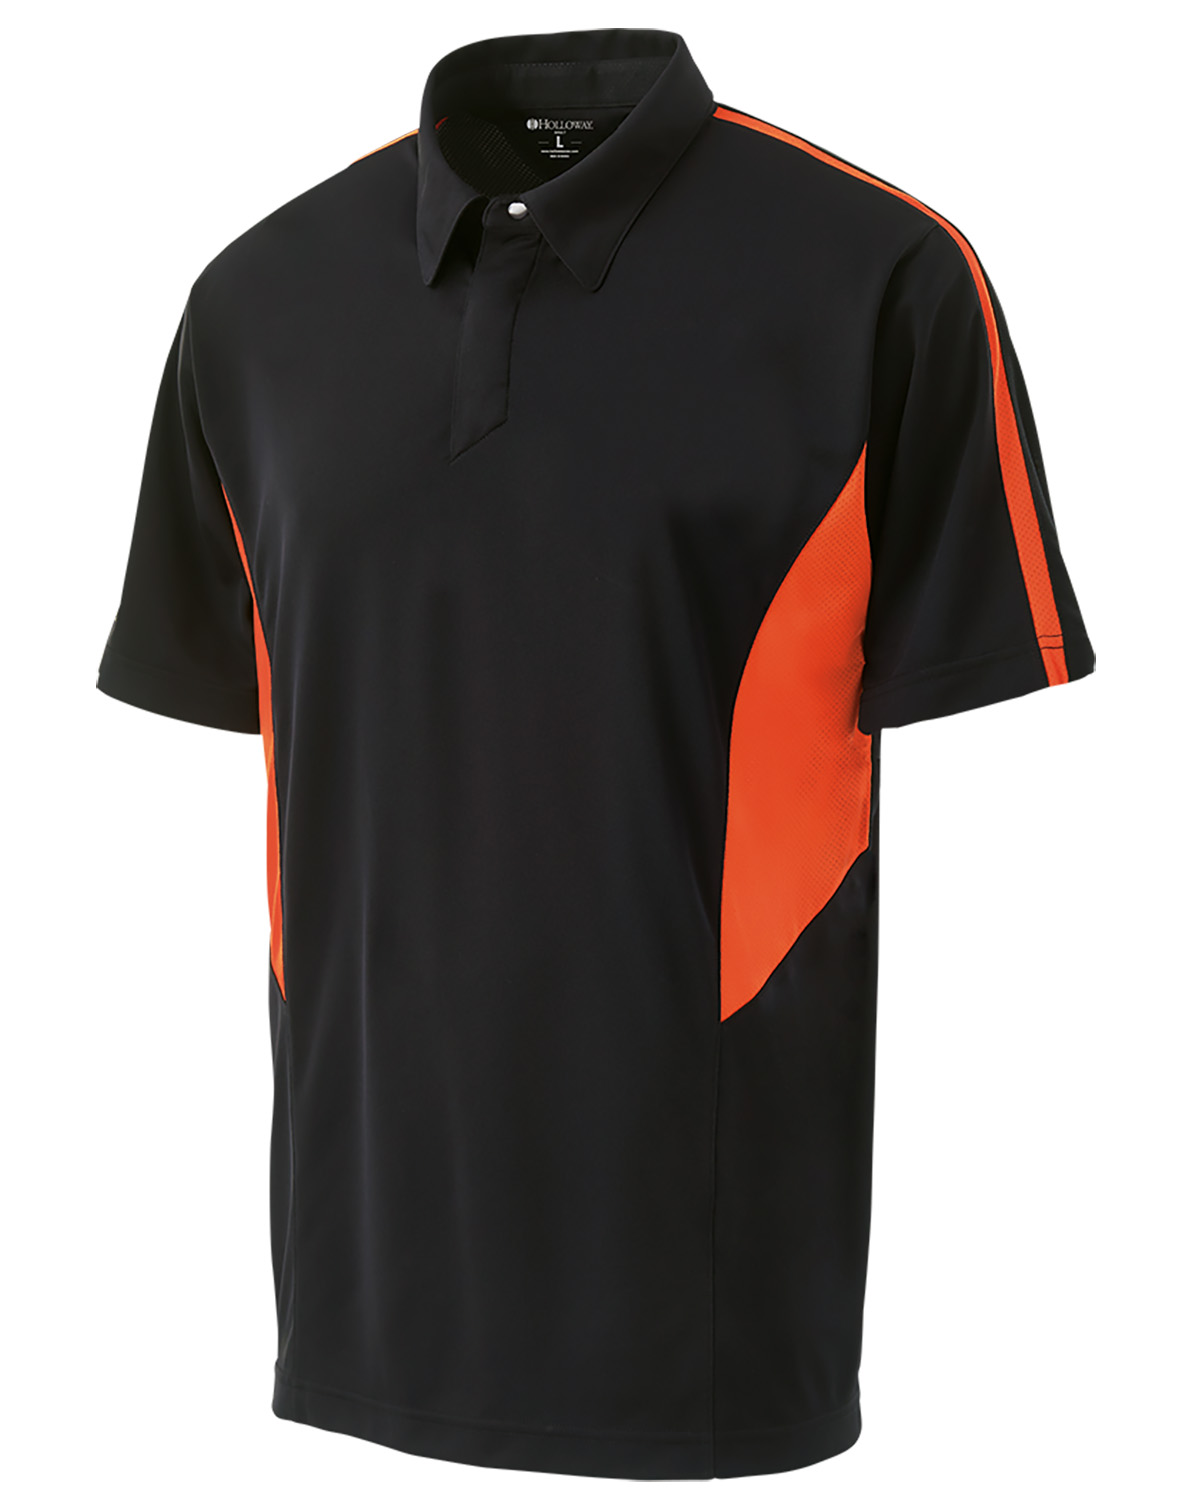 Holloway 222408 - Adult Polyester Snag Resistant Shark Bite Polo